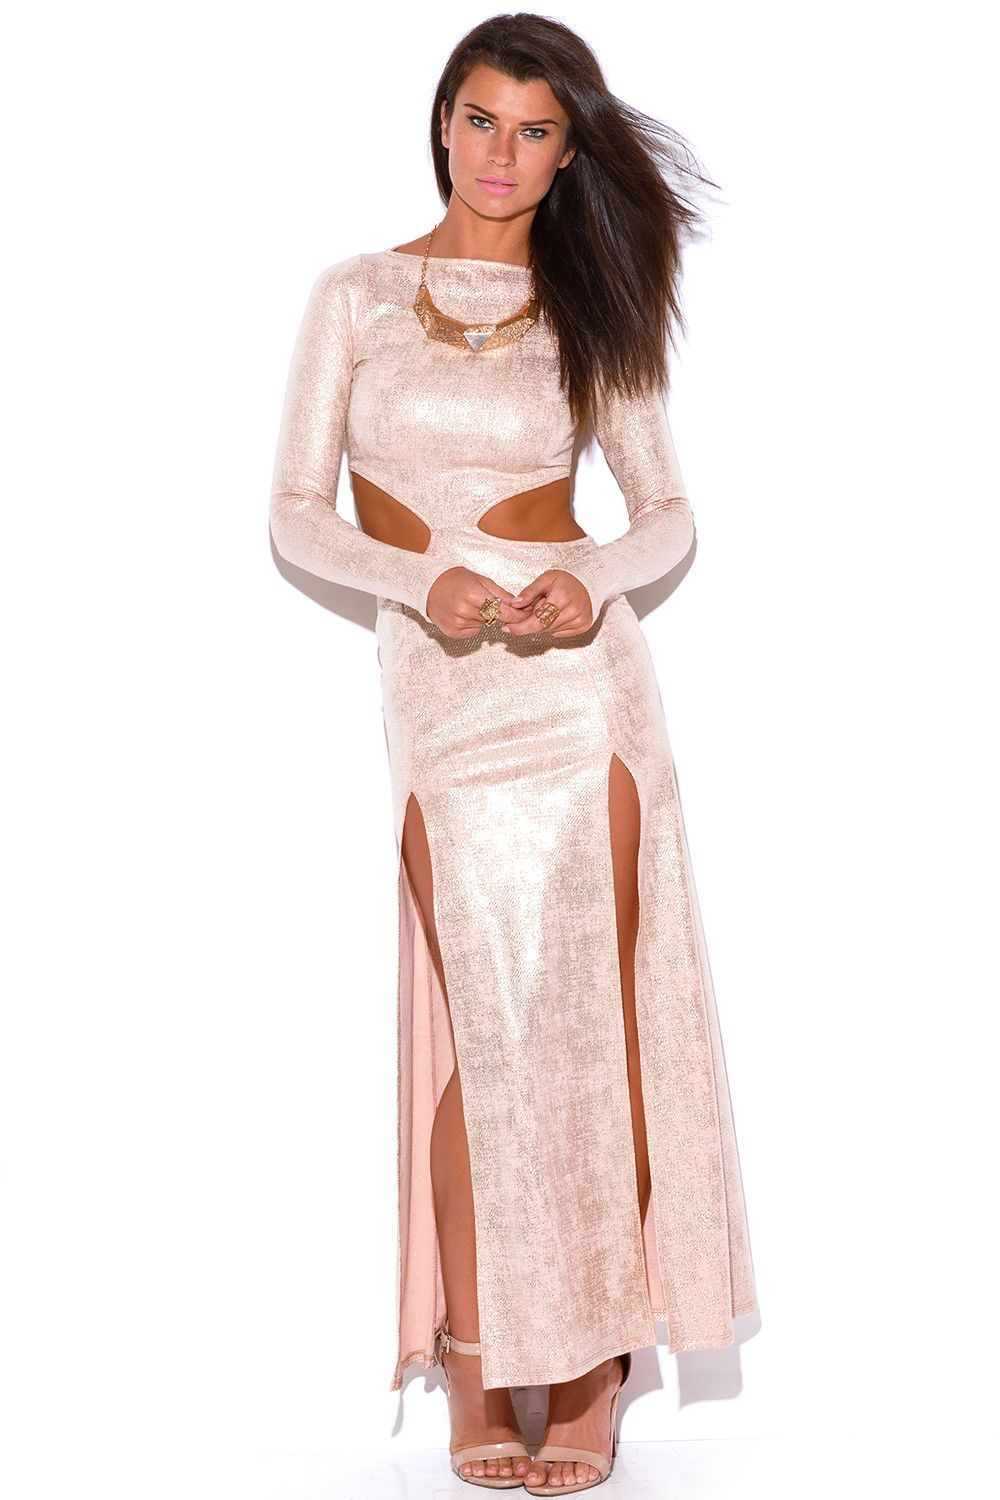 Metallic party dress products pinterest metallic party dresses